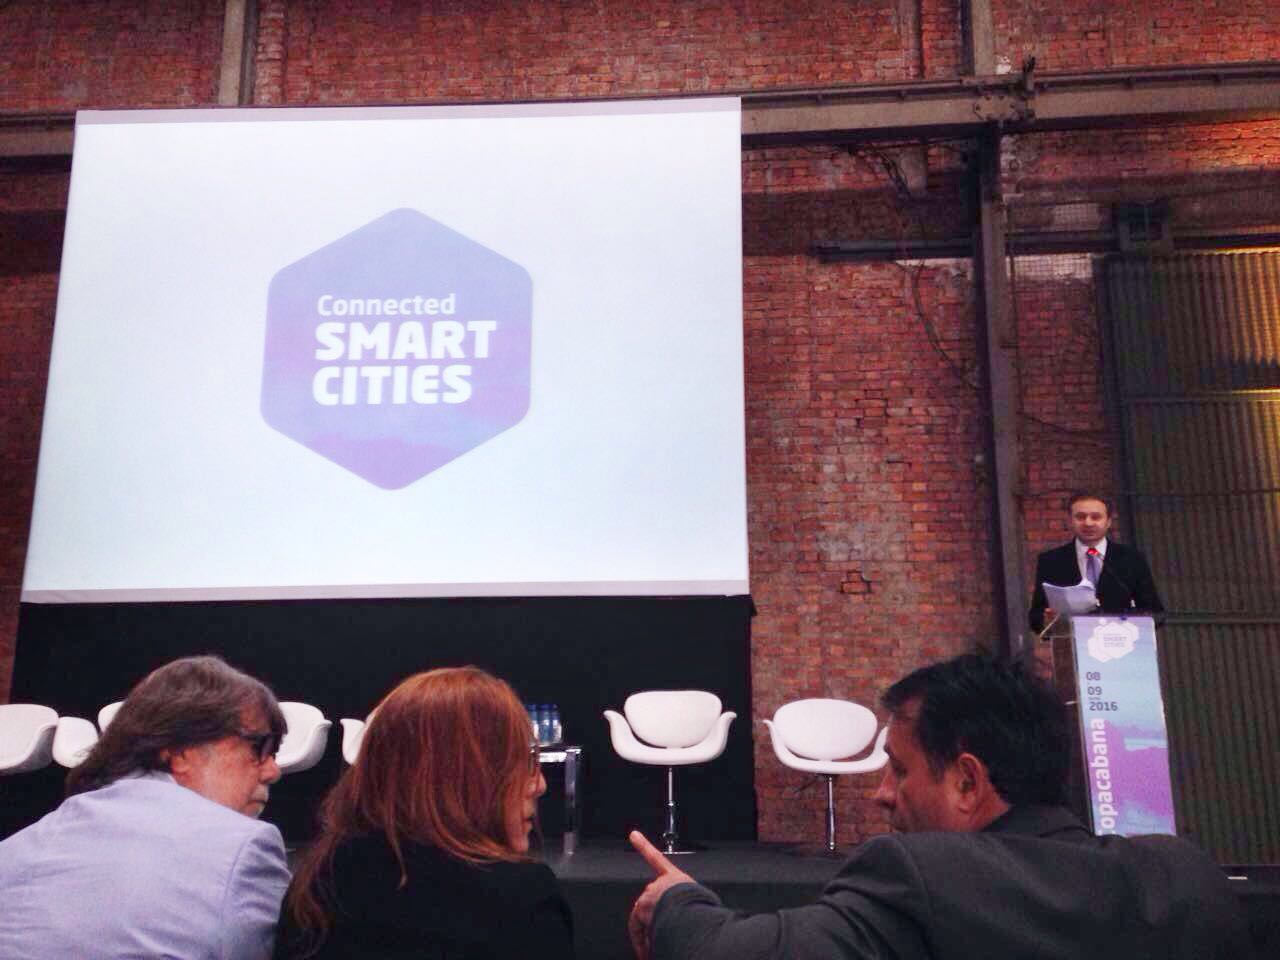 Connected Smart Cities – Rio